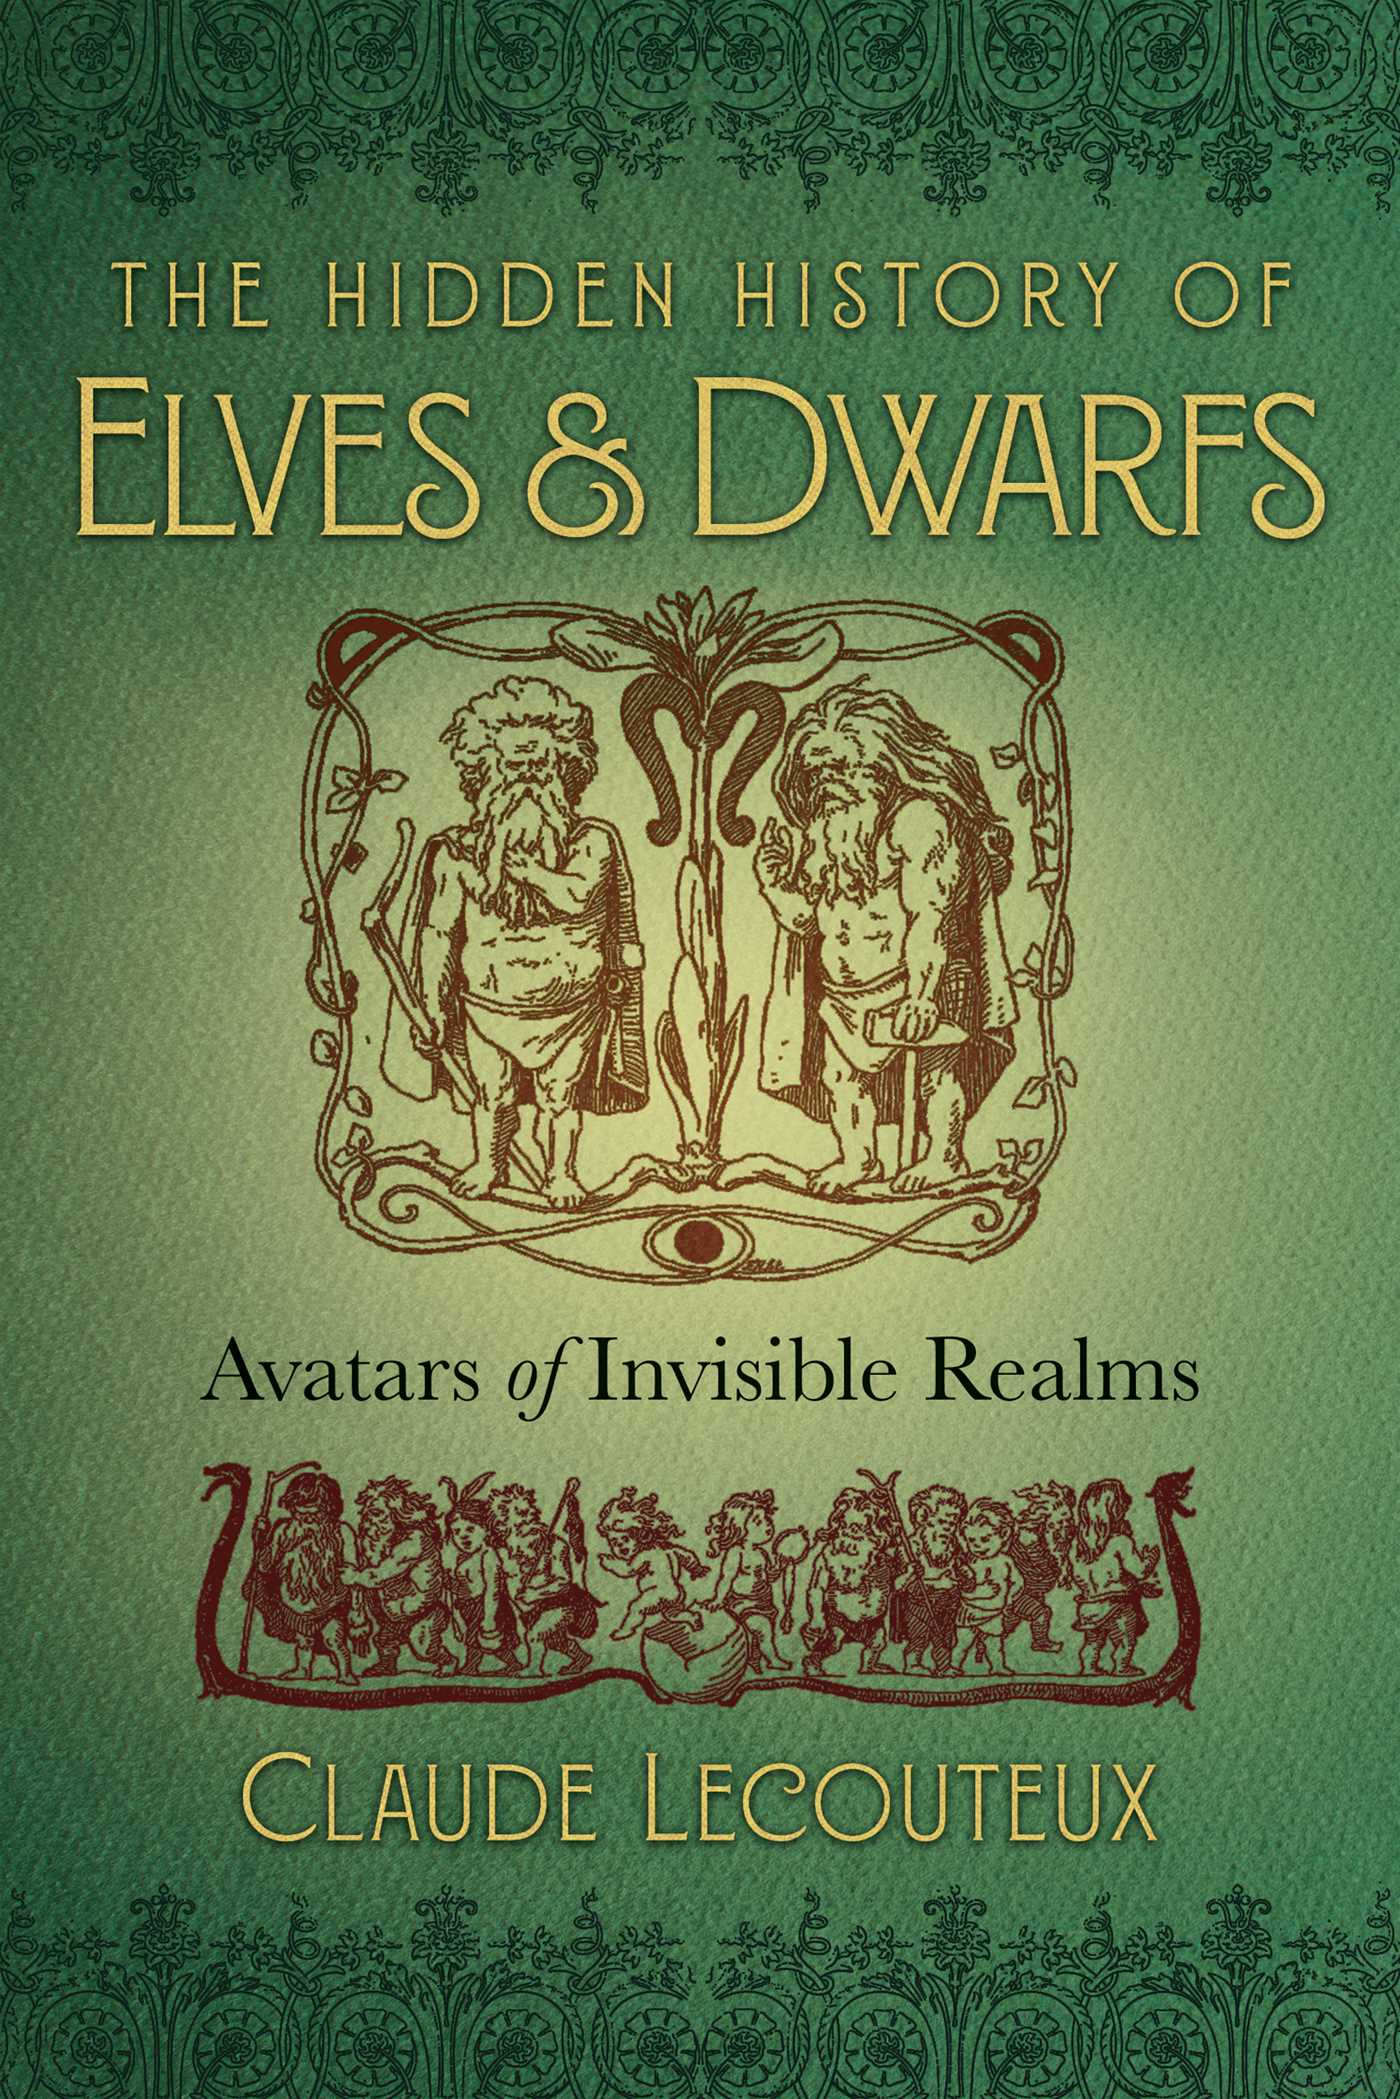 The hidden history of elves and dwarfs 9781620557167 hr